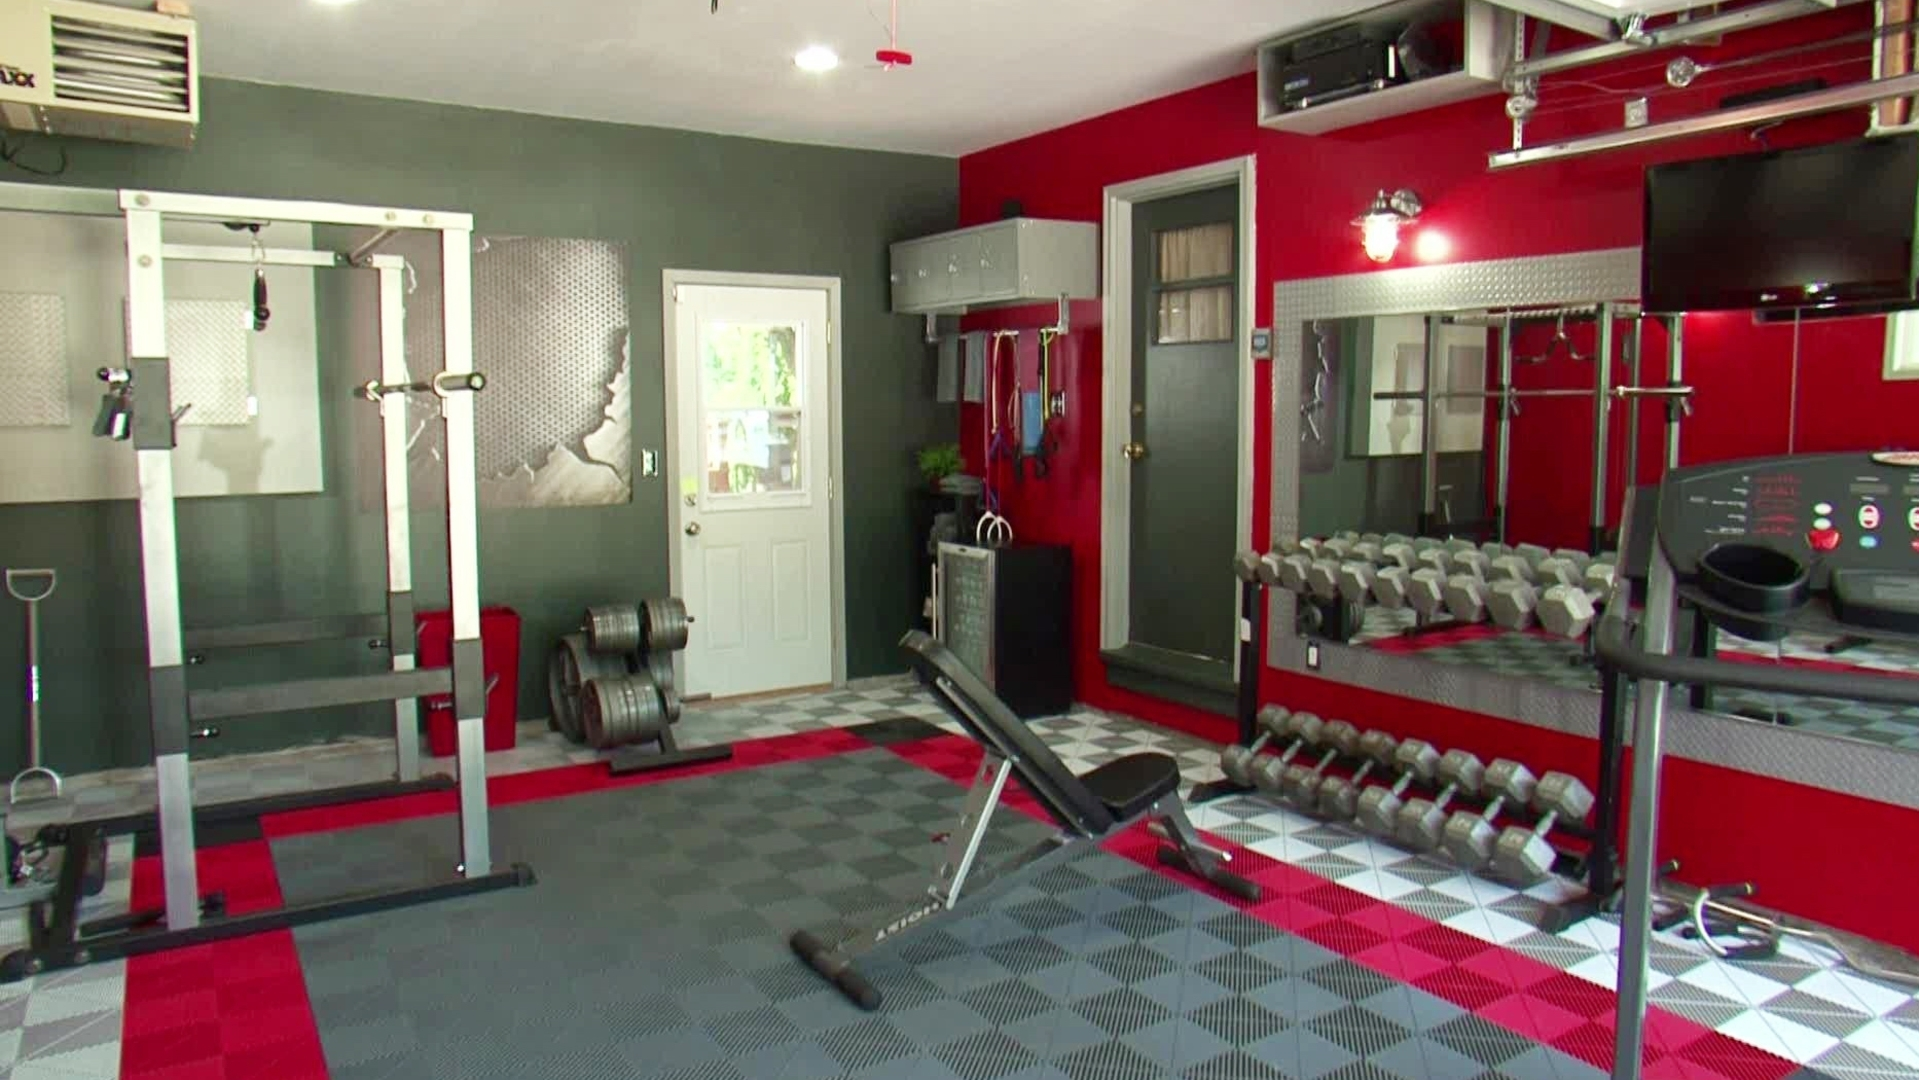 Home garage gym ideas u madison art center design